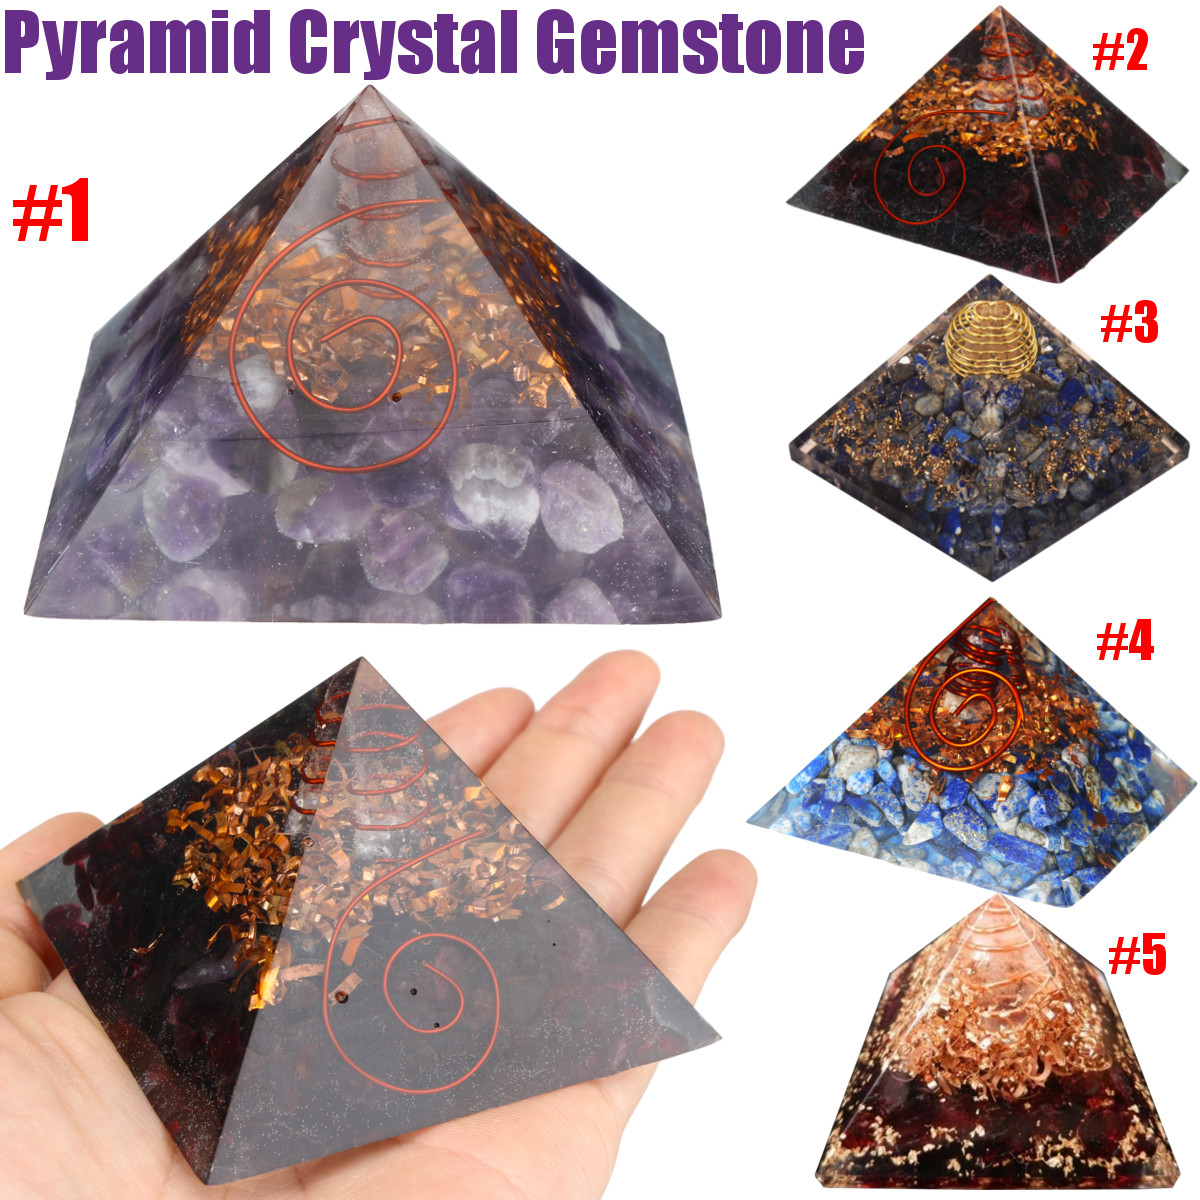 New Pyramid Crystal Gemstone Meditation Yoga Energy Healing Stone